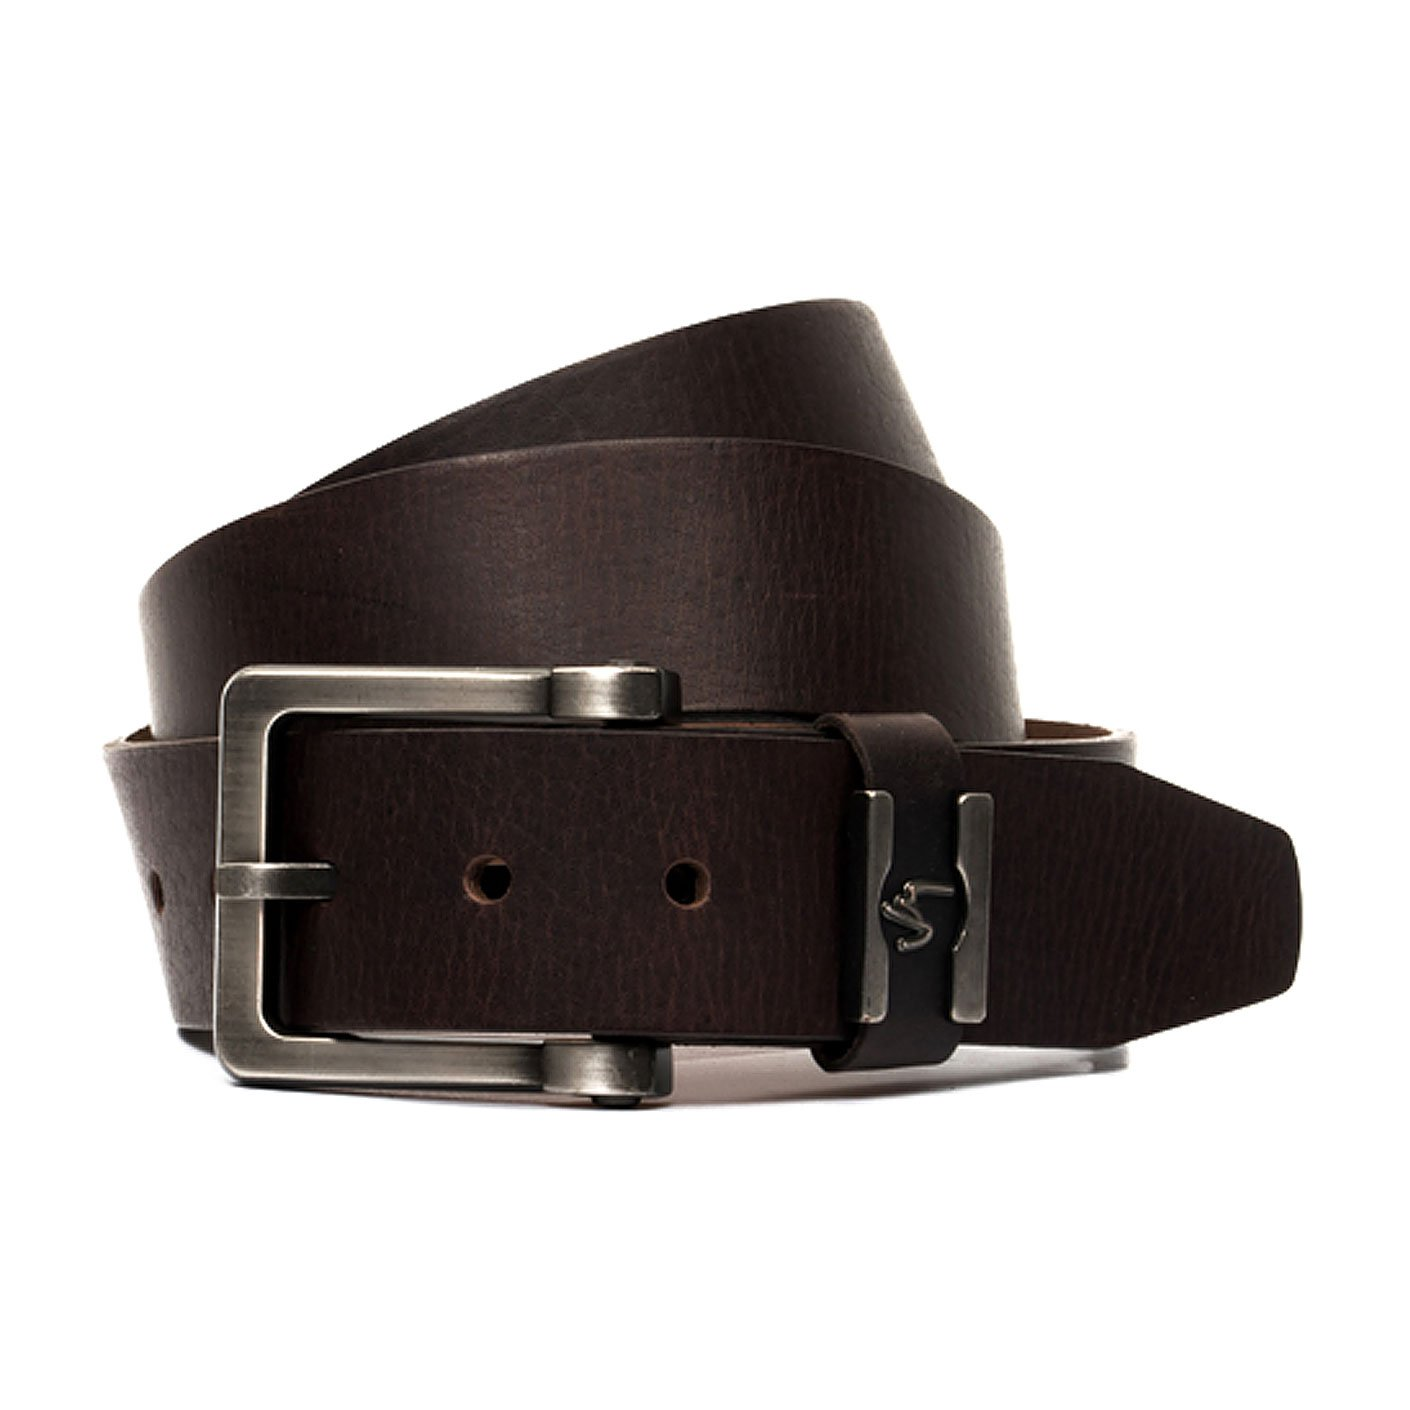 VÉLEZ Genuine Leather Belts For Men | Cinturones Cuero De Hombre at Amazon Mens Clothing store: